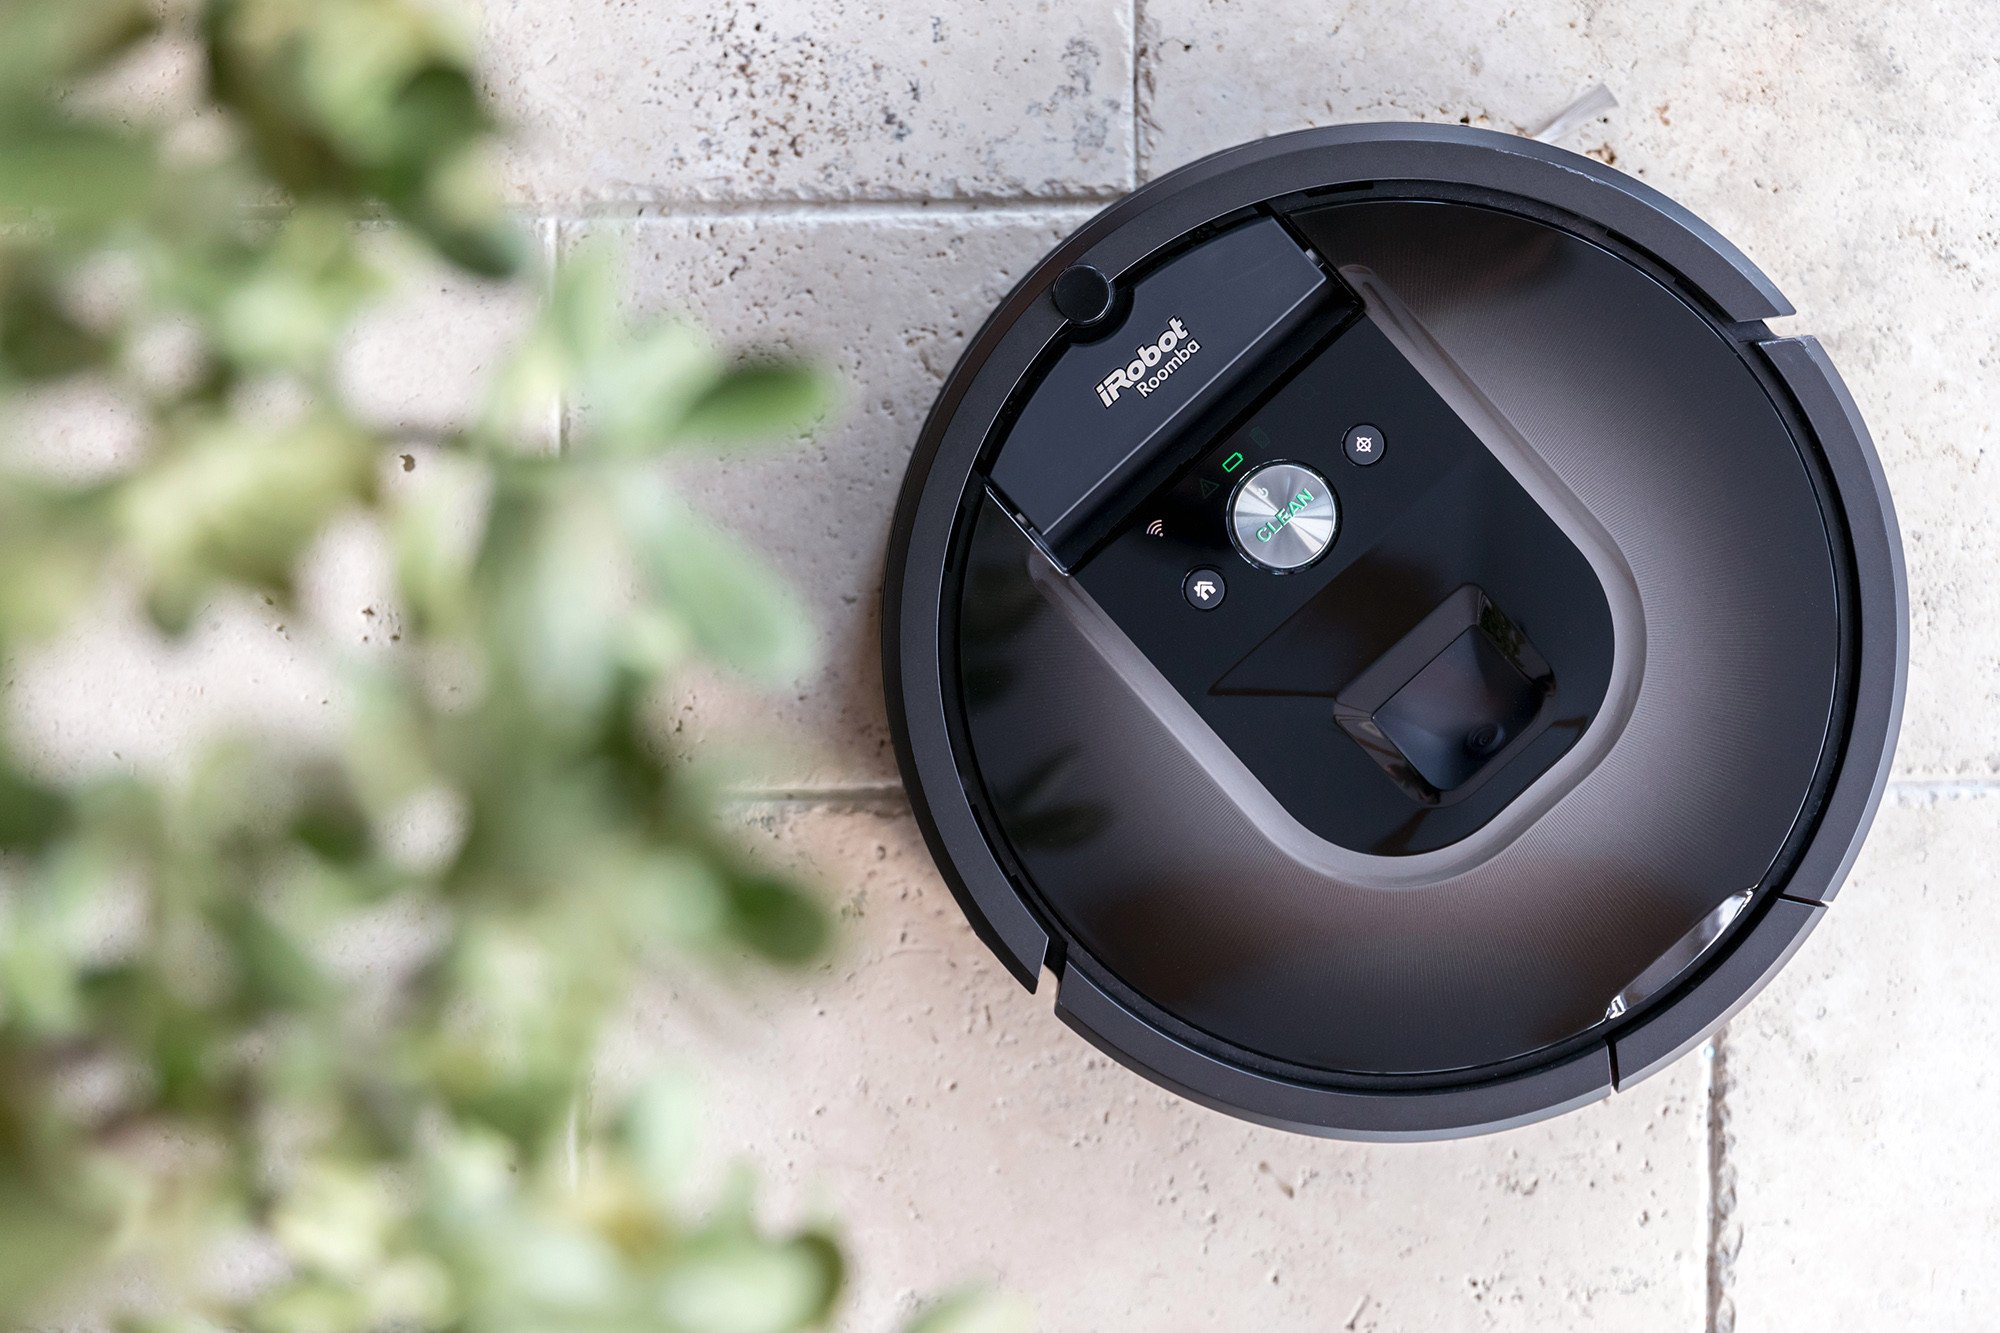 Roomba stocks are a mess thanks to weak earnings